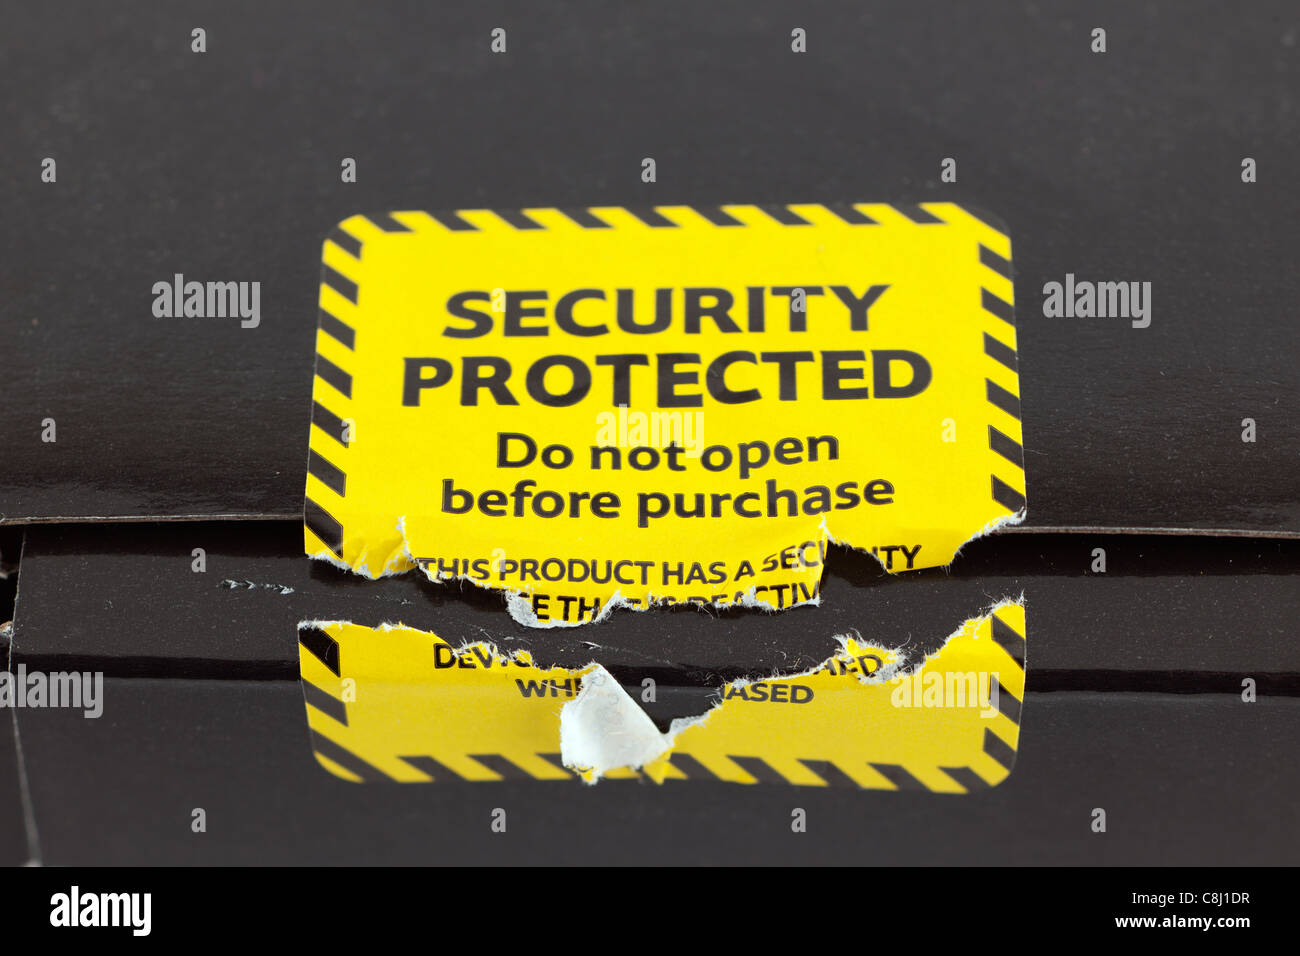 Broken security protected yellow label - Stock Image